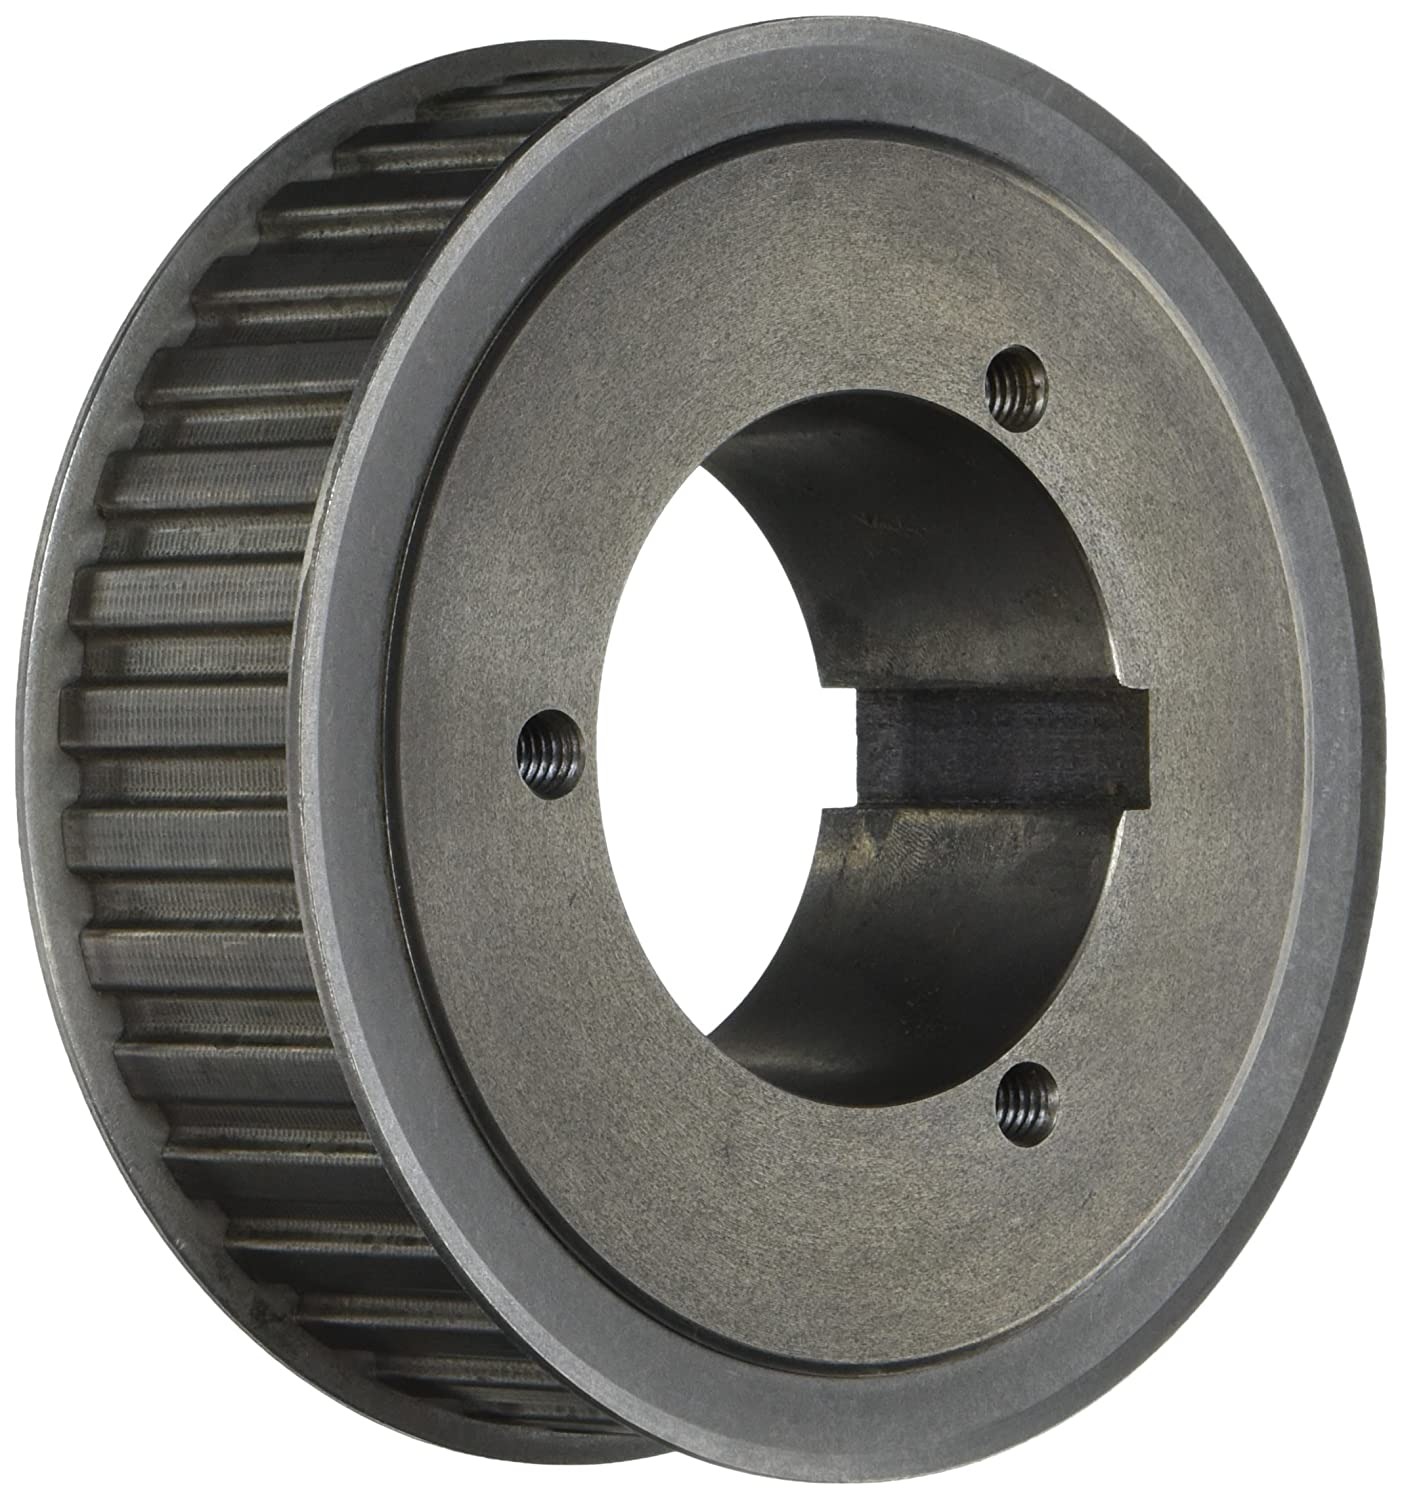 1.5 Wide 1//2 Pitch Browning 36HQ150 Steel Stock Gearbelt Pulleys with Split Taper Bushings for H150 Belts